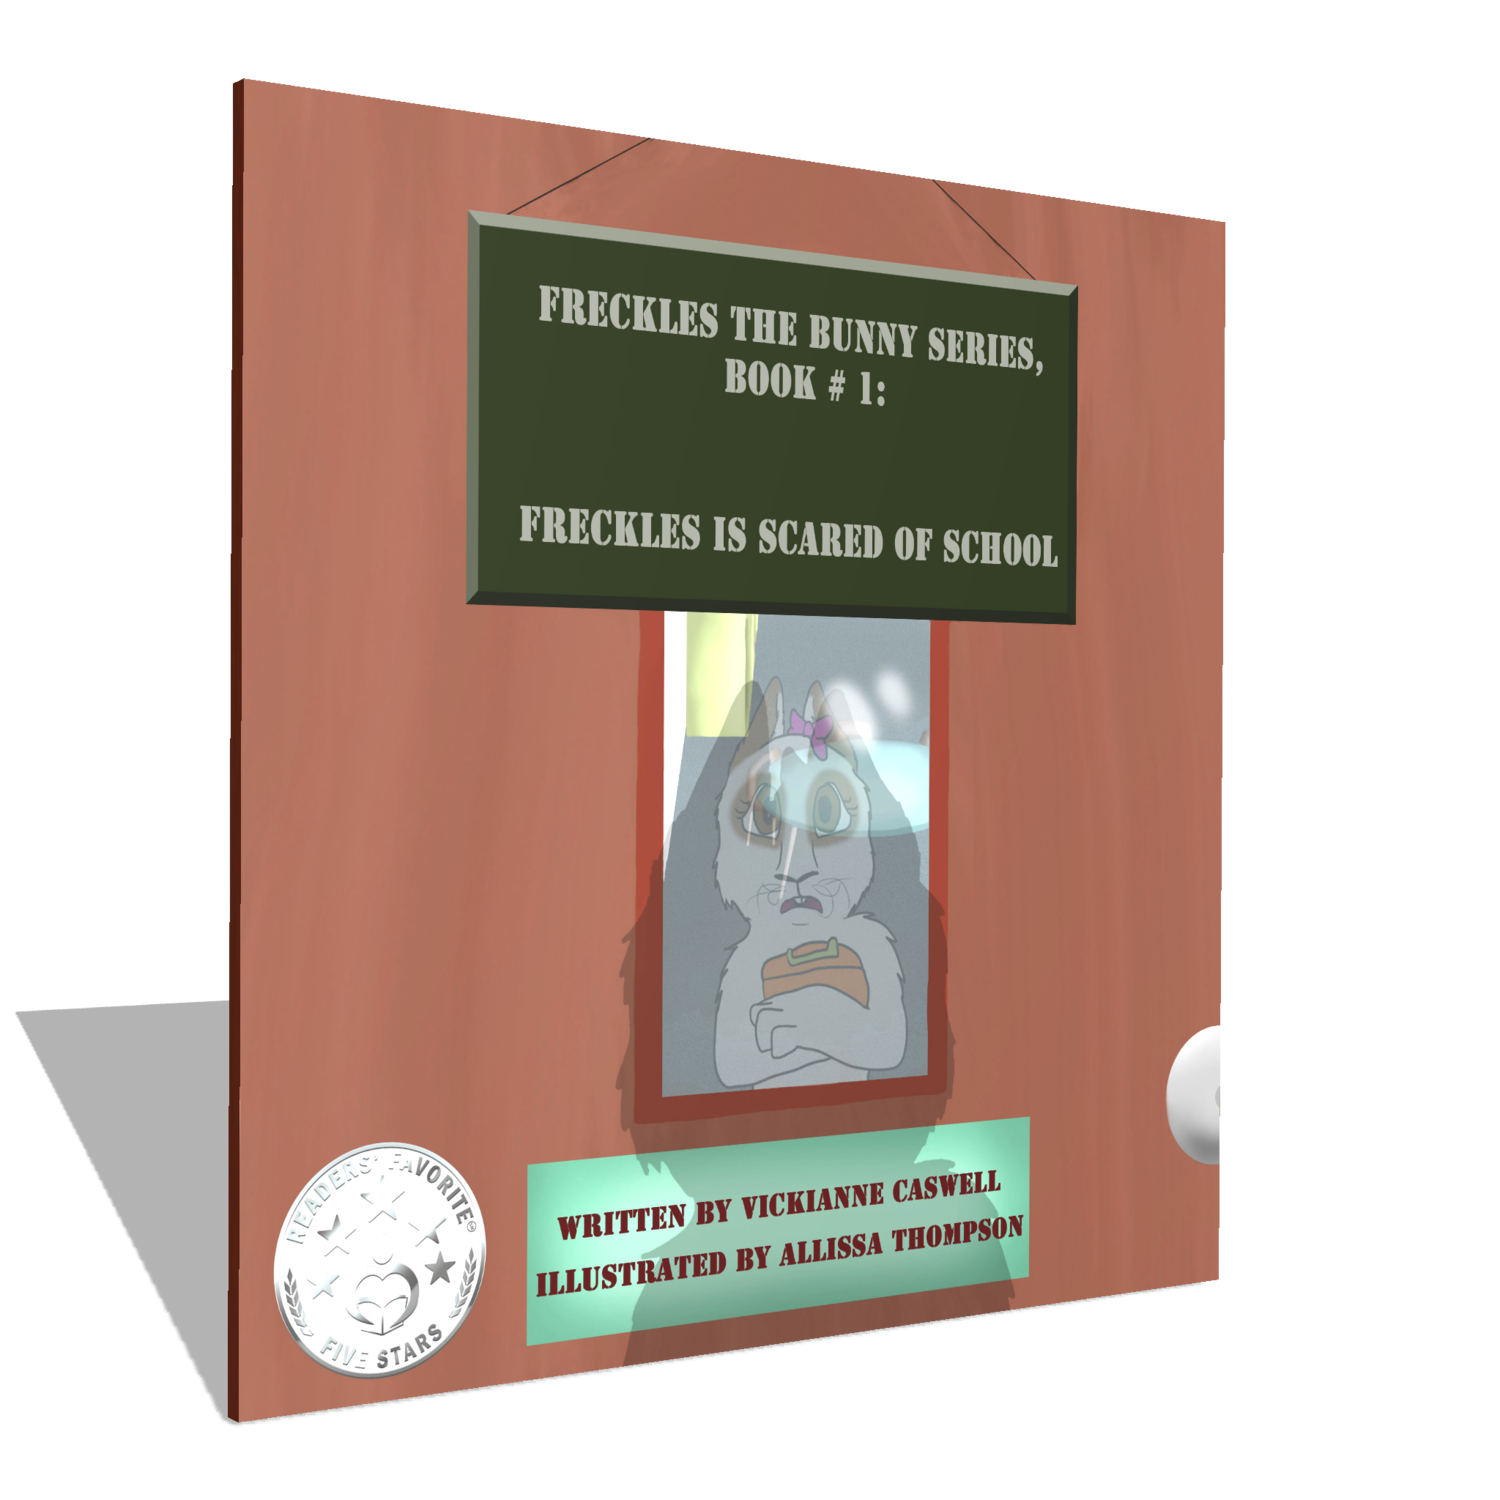 Freckles is Scared of School (Freckles the Bunny Series # 1)